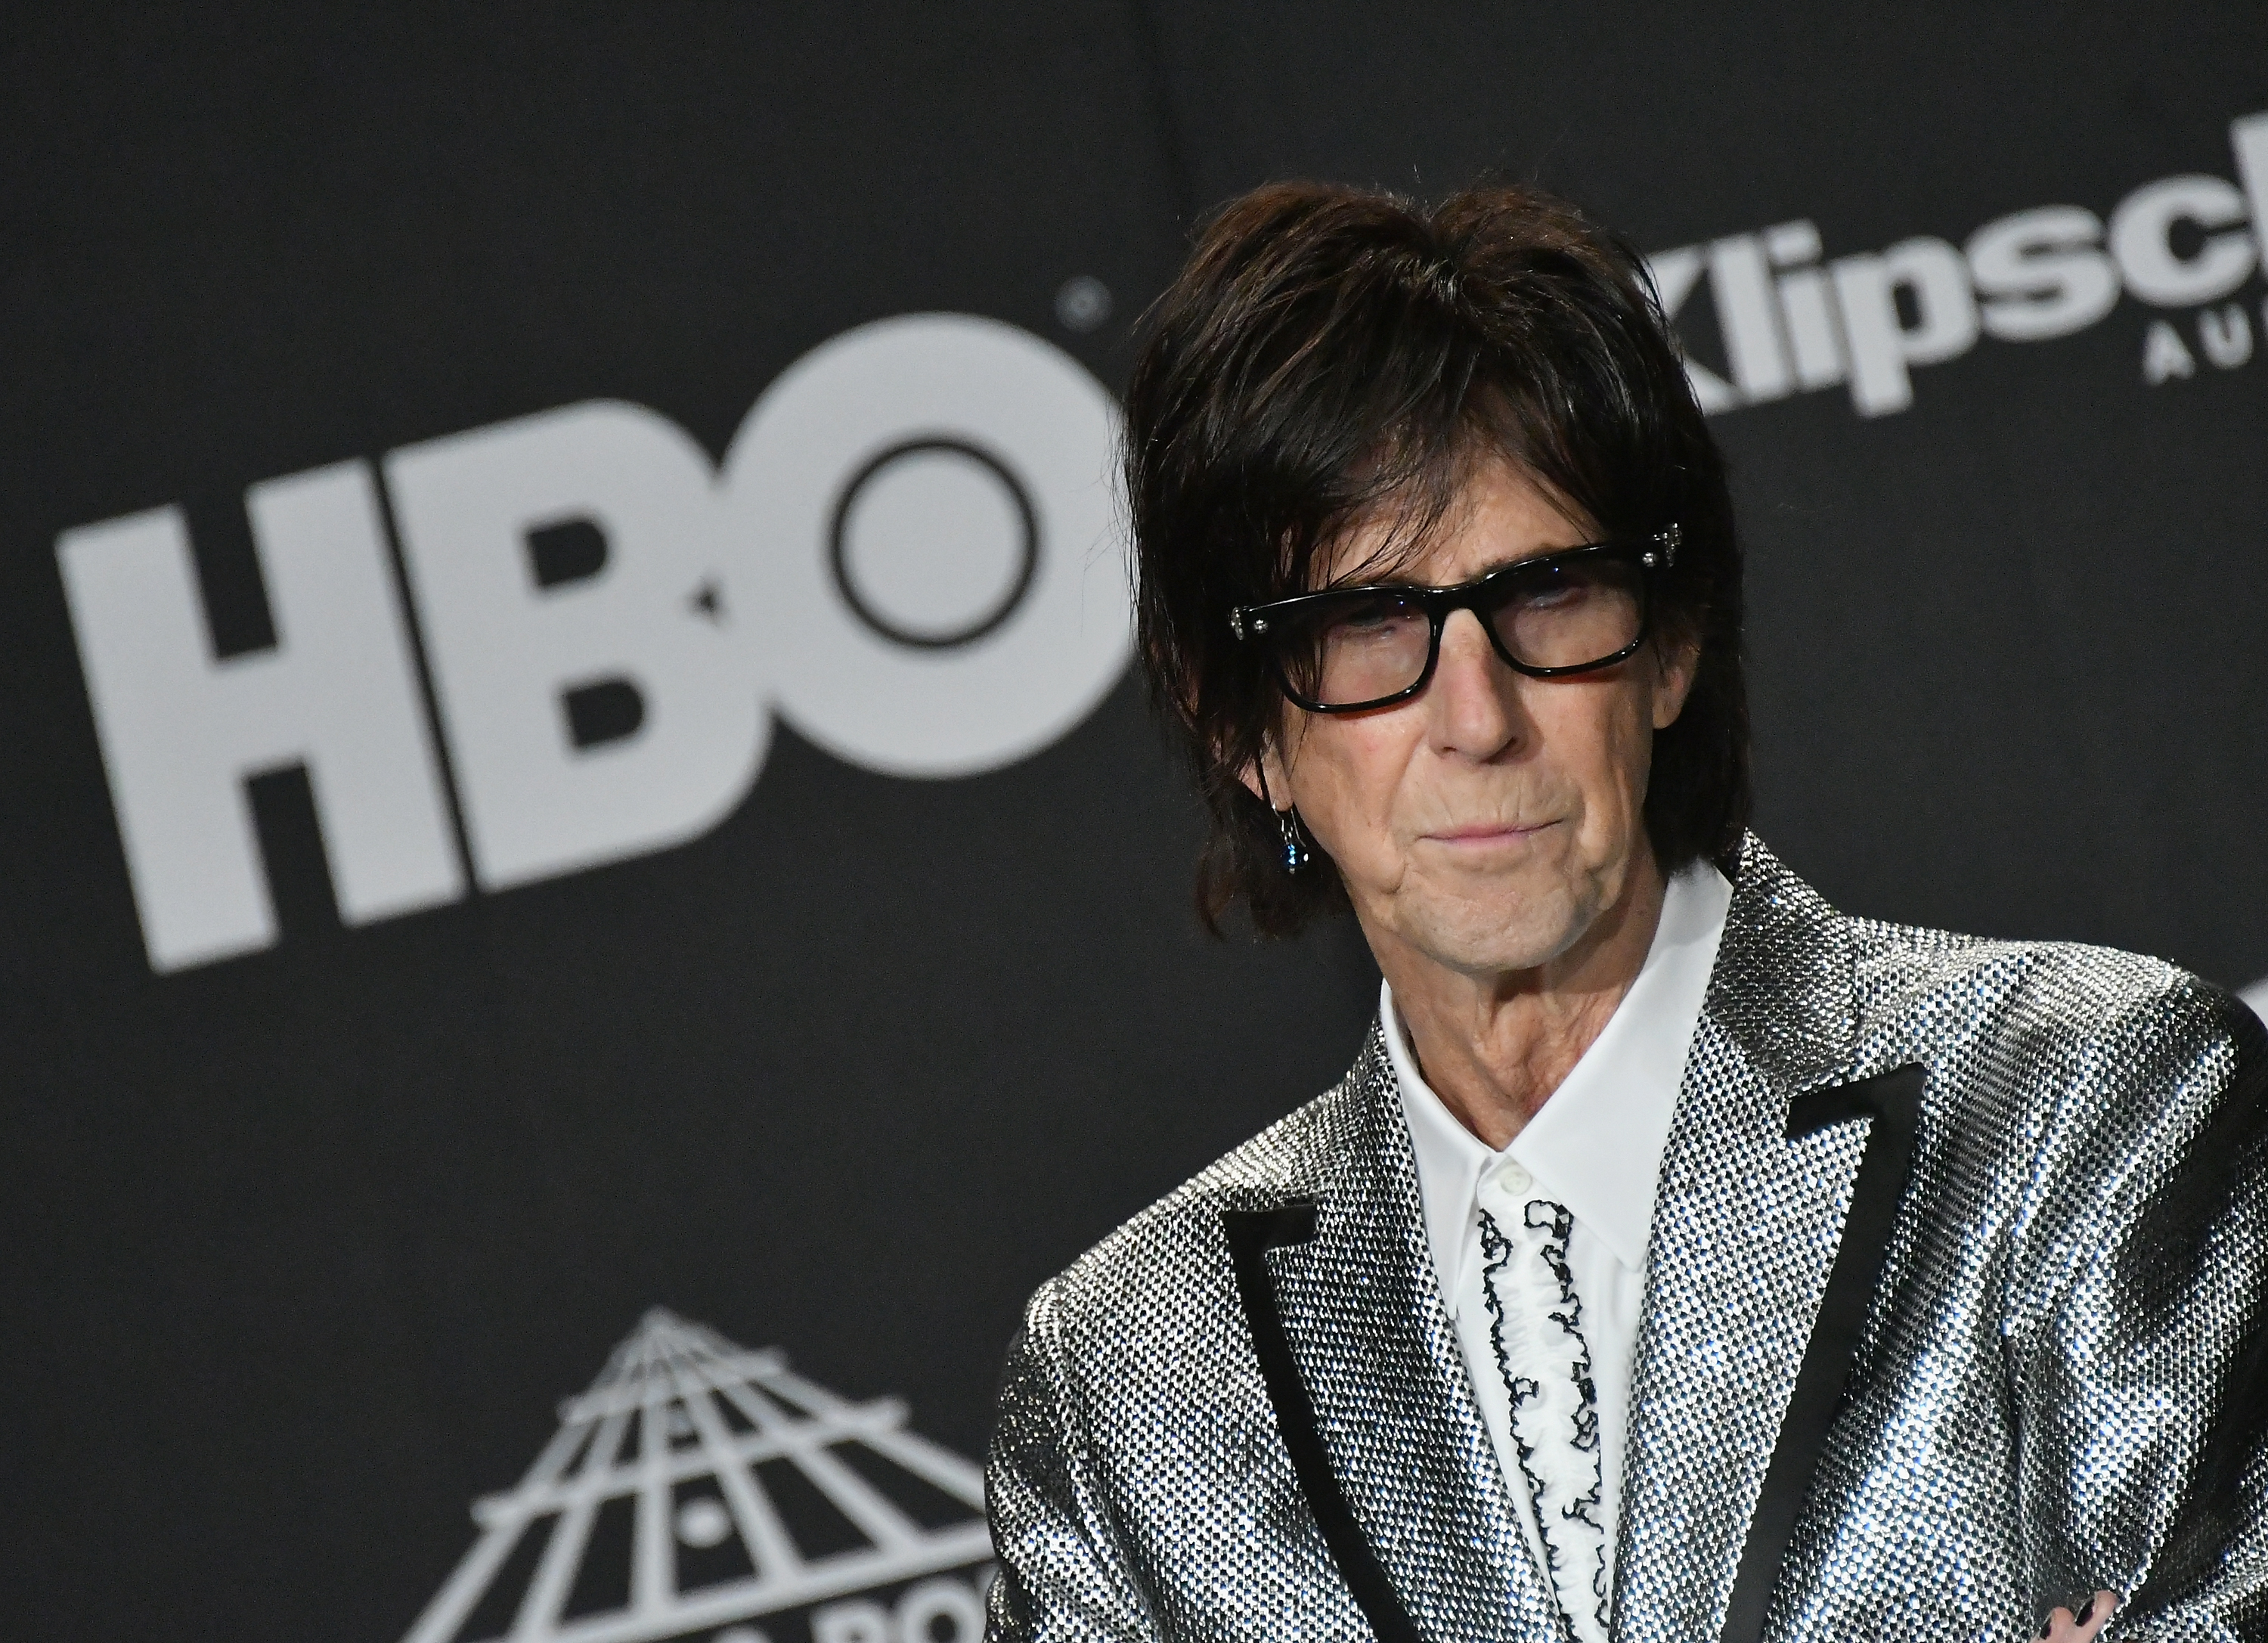 Ric Ocasek facts